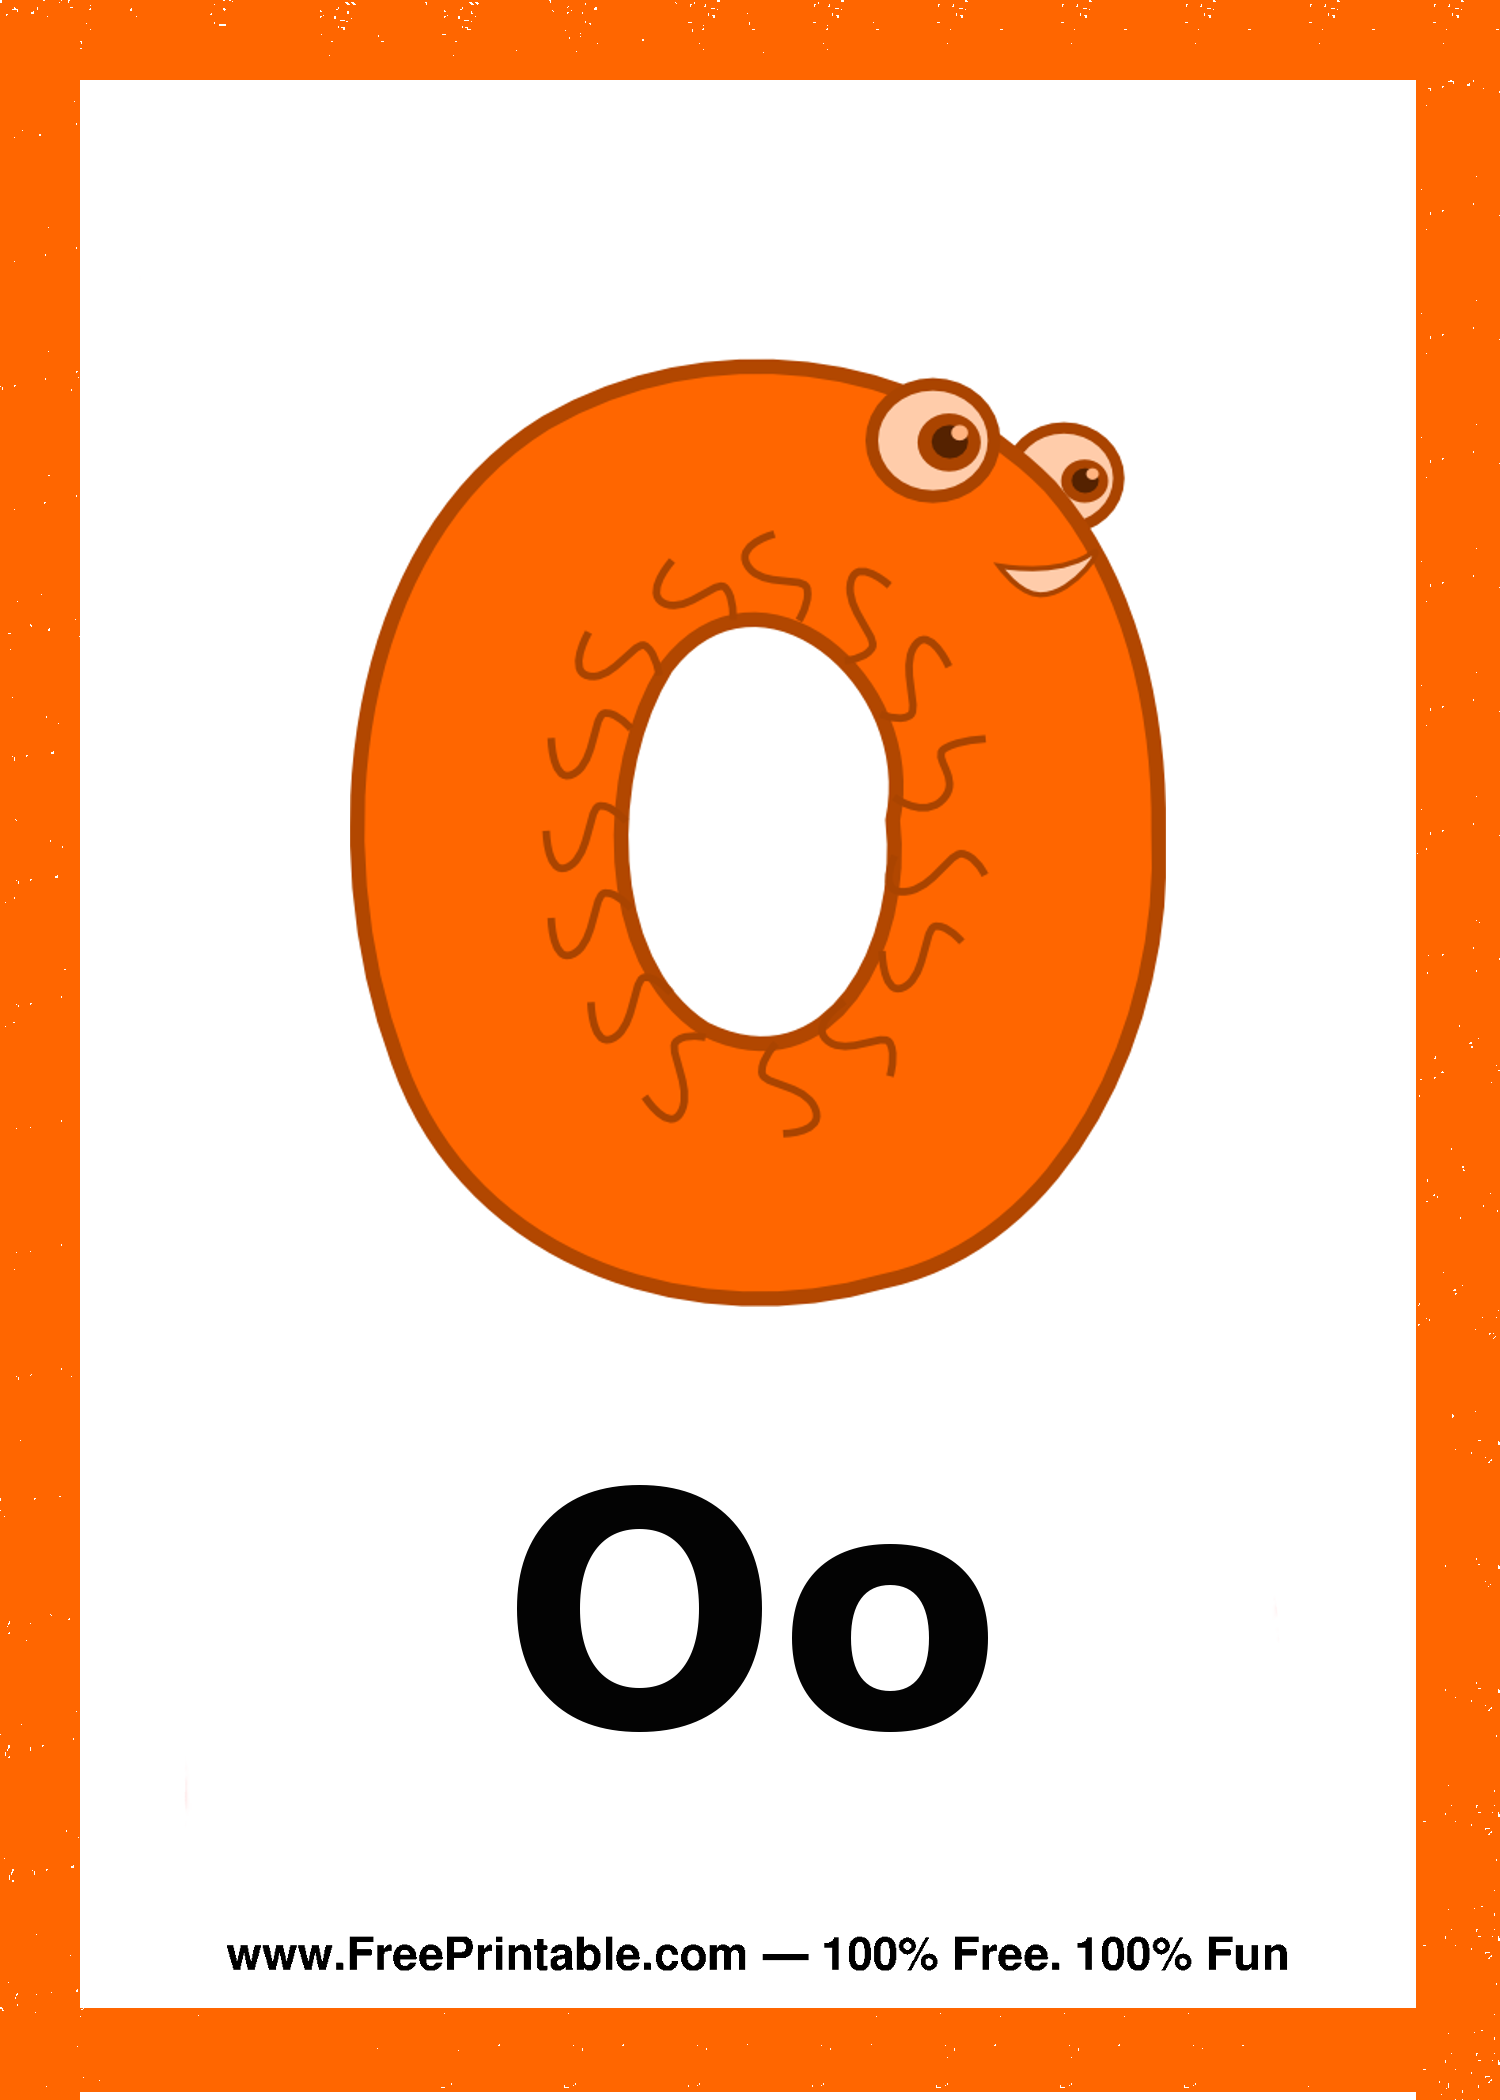 Customize Your Free Printable Letter O Creature Flash Card